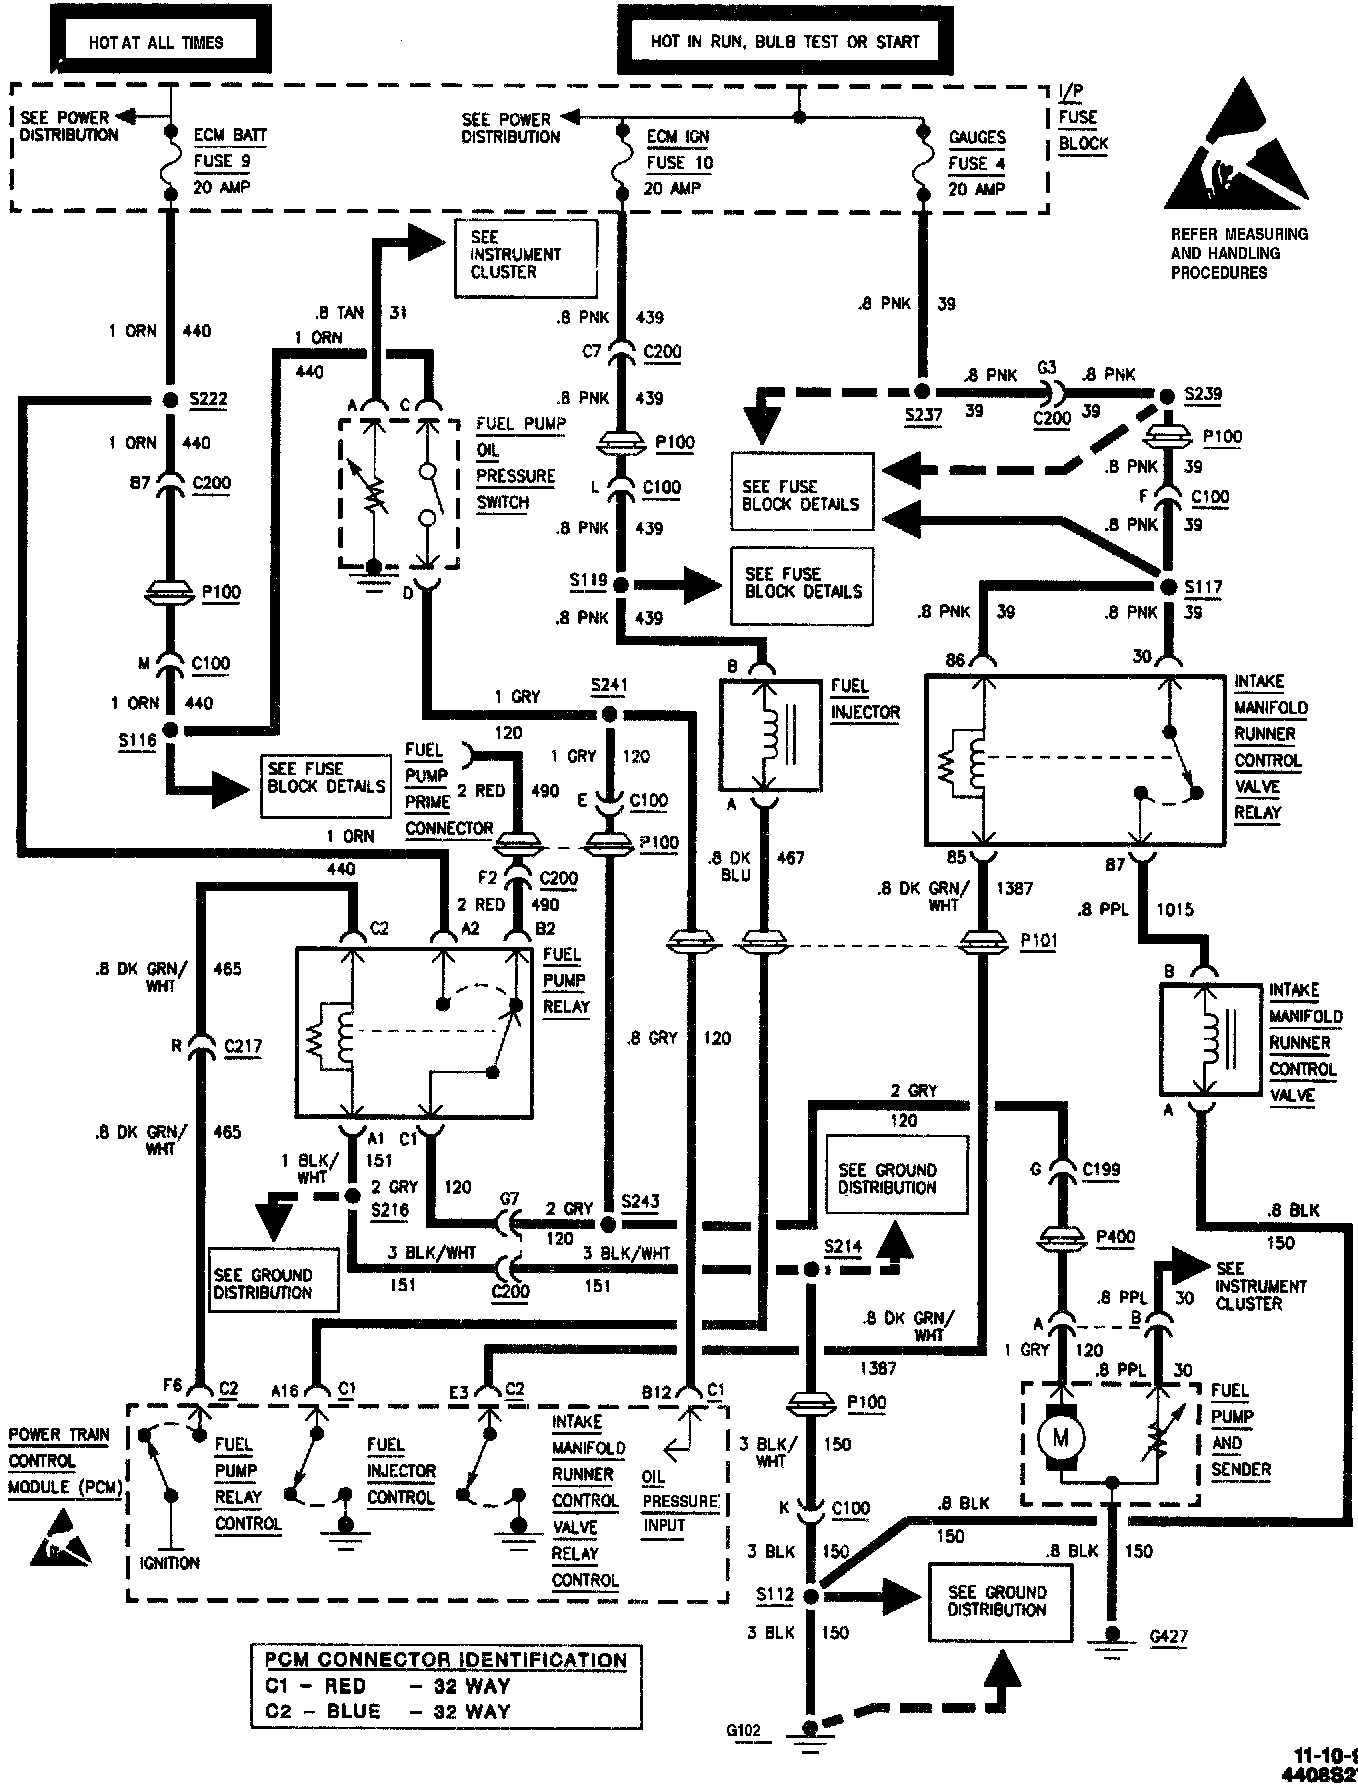 1967 john deere 110 wiring diagram best wiring library John Deere 310 Wiring Diagram 2005 chevy trailblazer fuel pump wiring best site wiring john deere 110 wiring diagram 1967 john